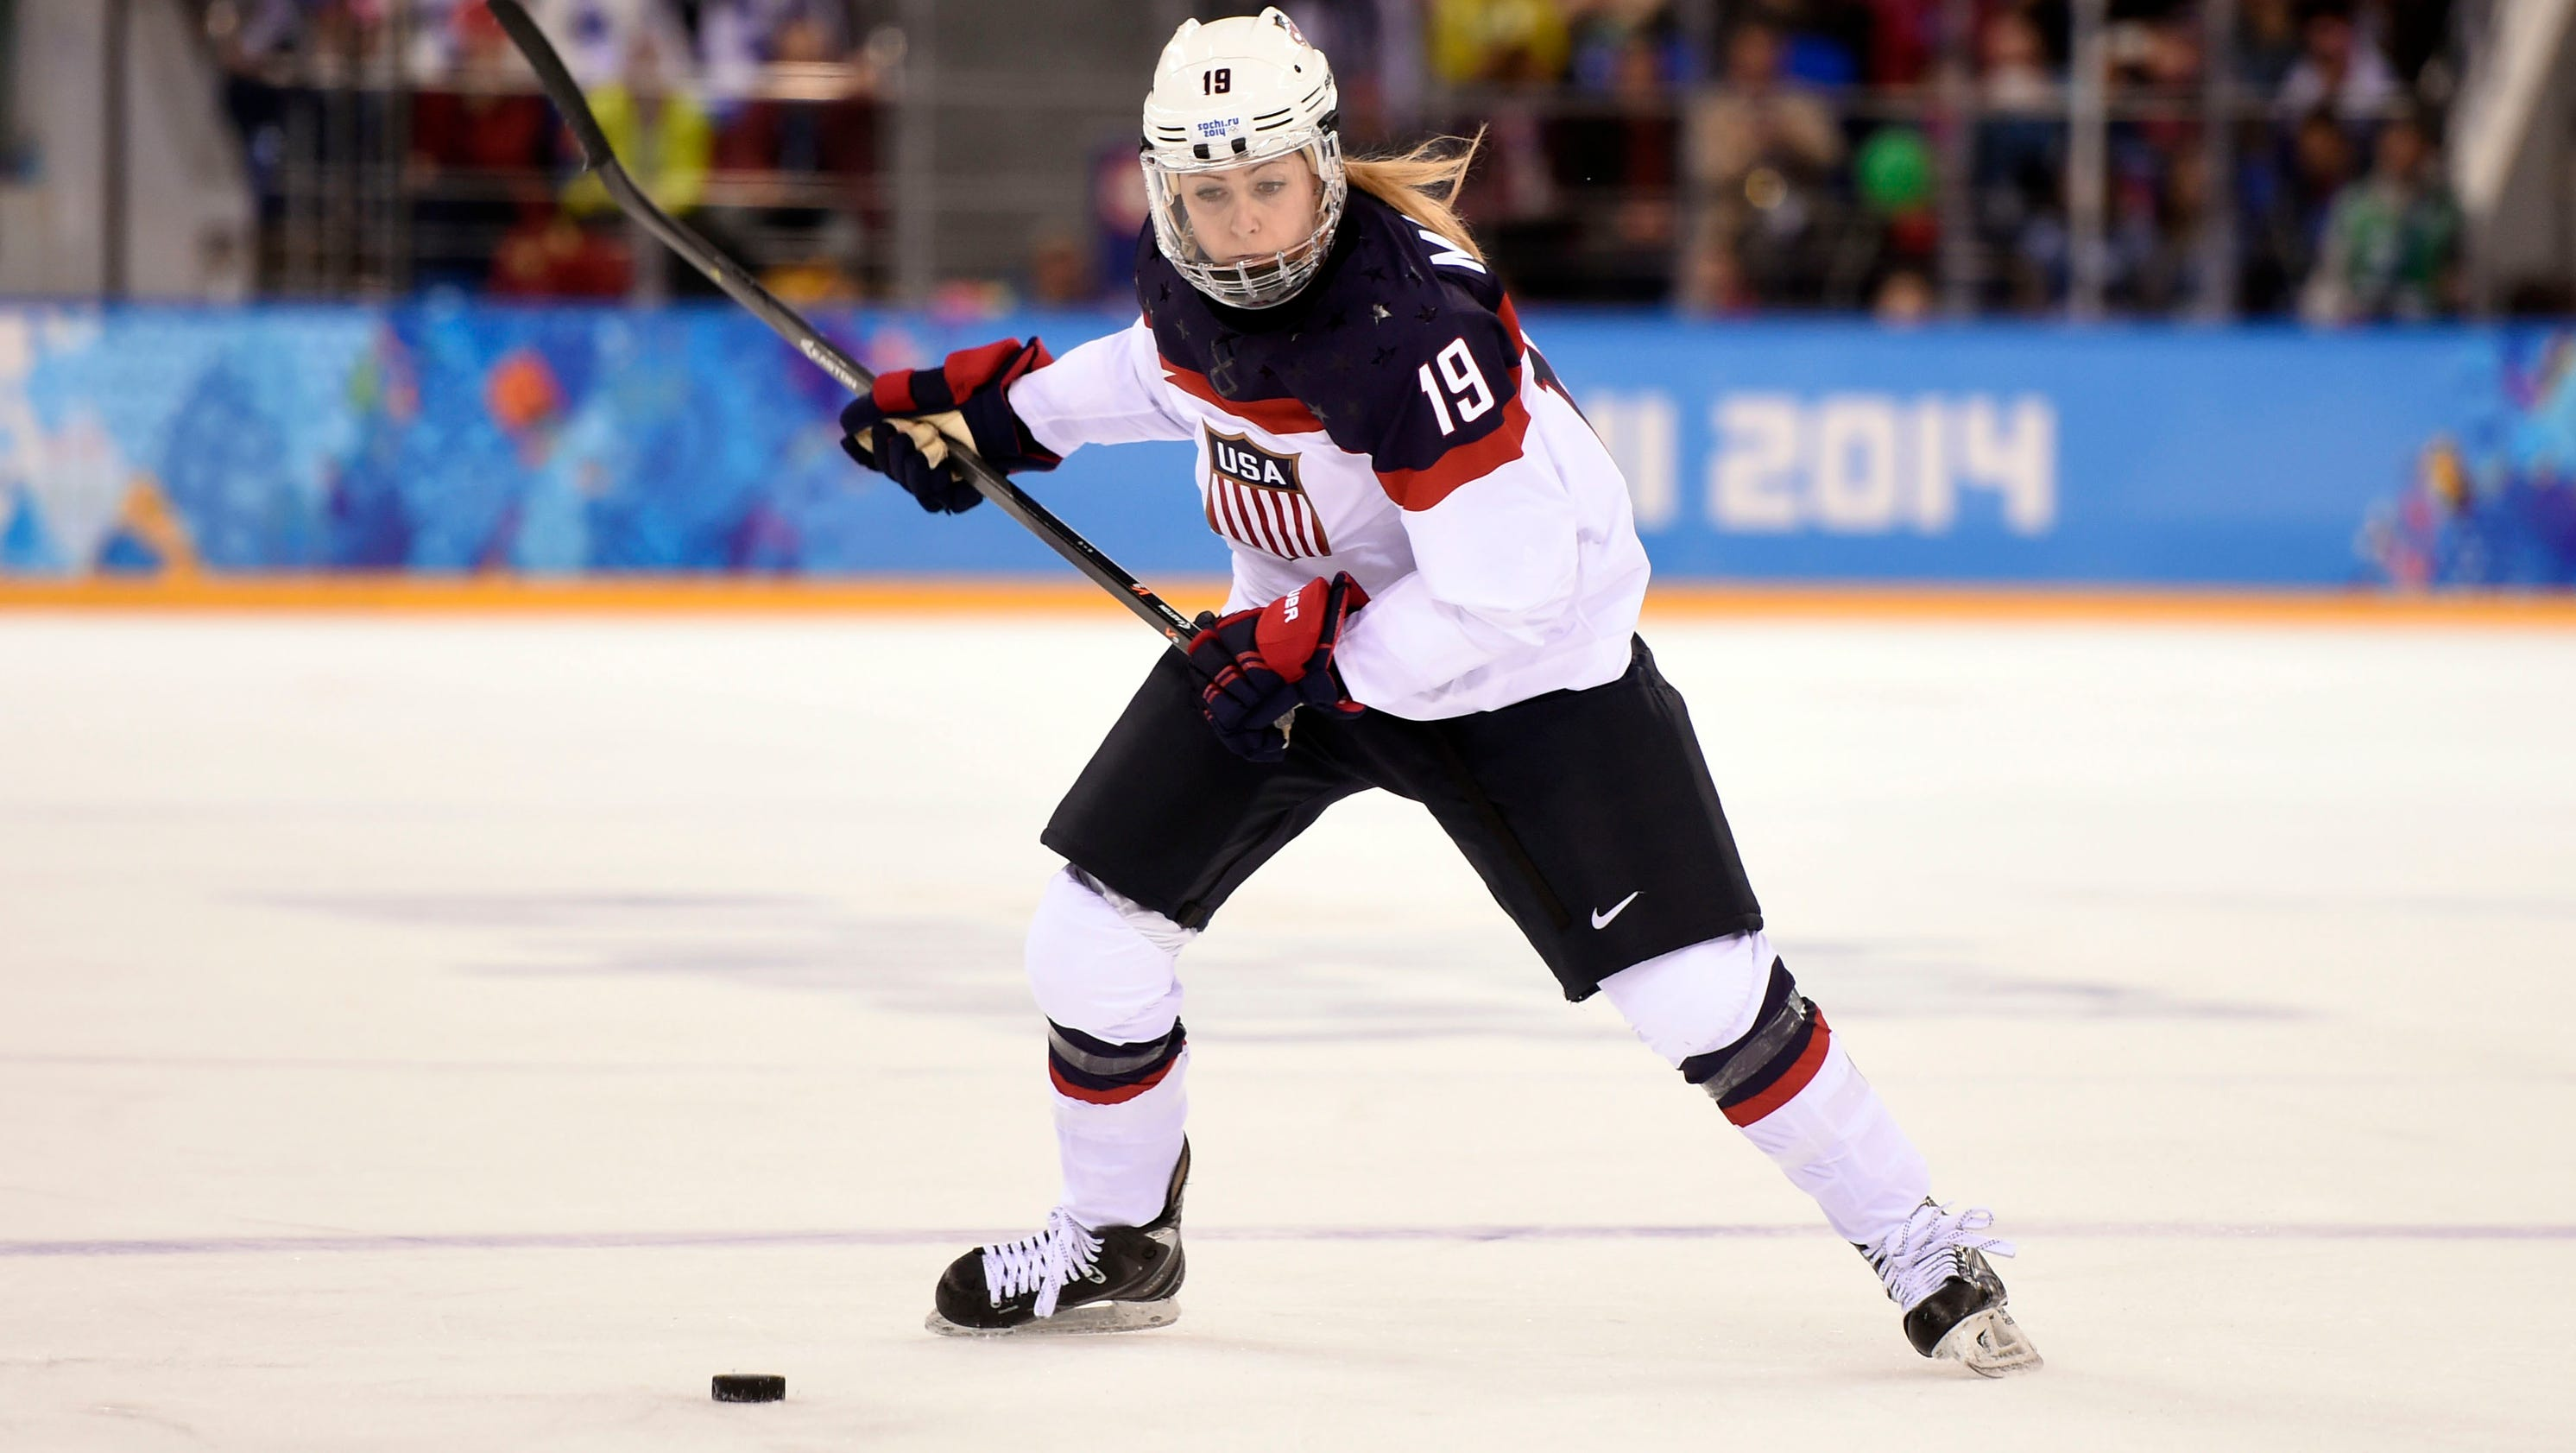 warroad chatrooms Gigi marvin is the latest in a long line as reporter casey wonnenberg reports, hockeytown u-s-a is living up to its name if the us women's hockey team places, gigi would be the 7th person from warroad to win a medal in the olympics.